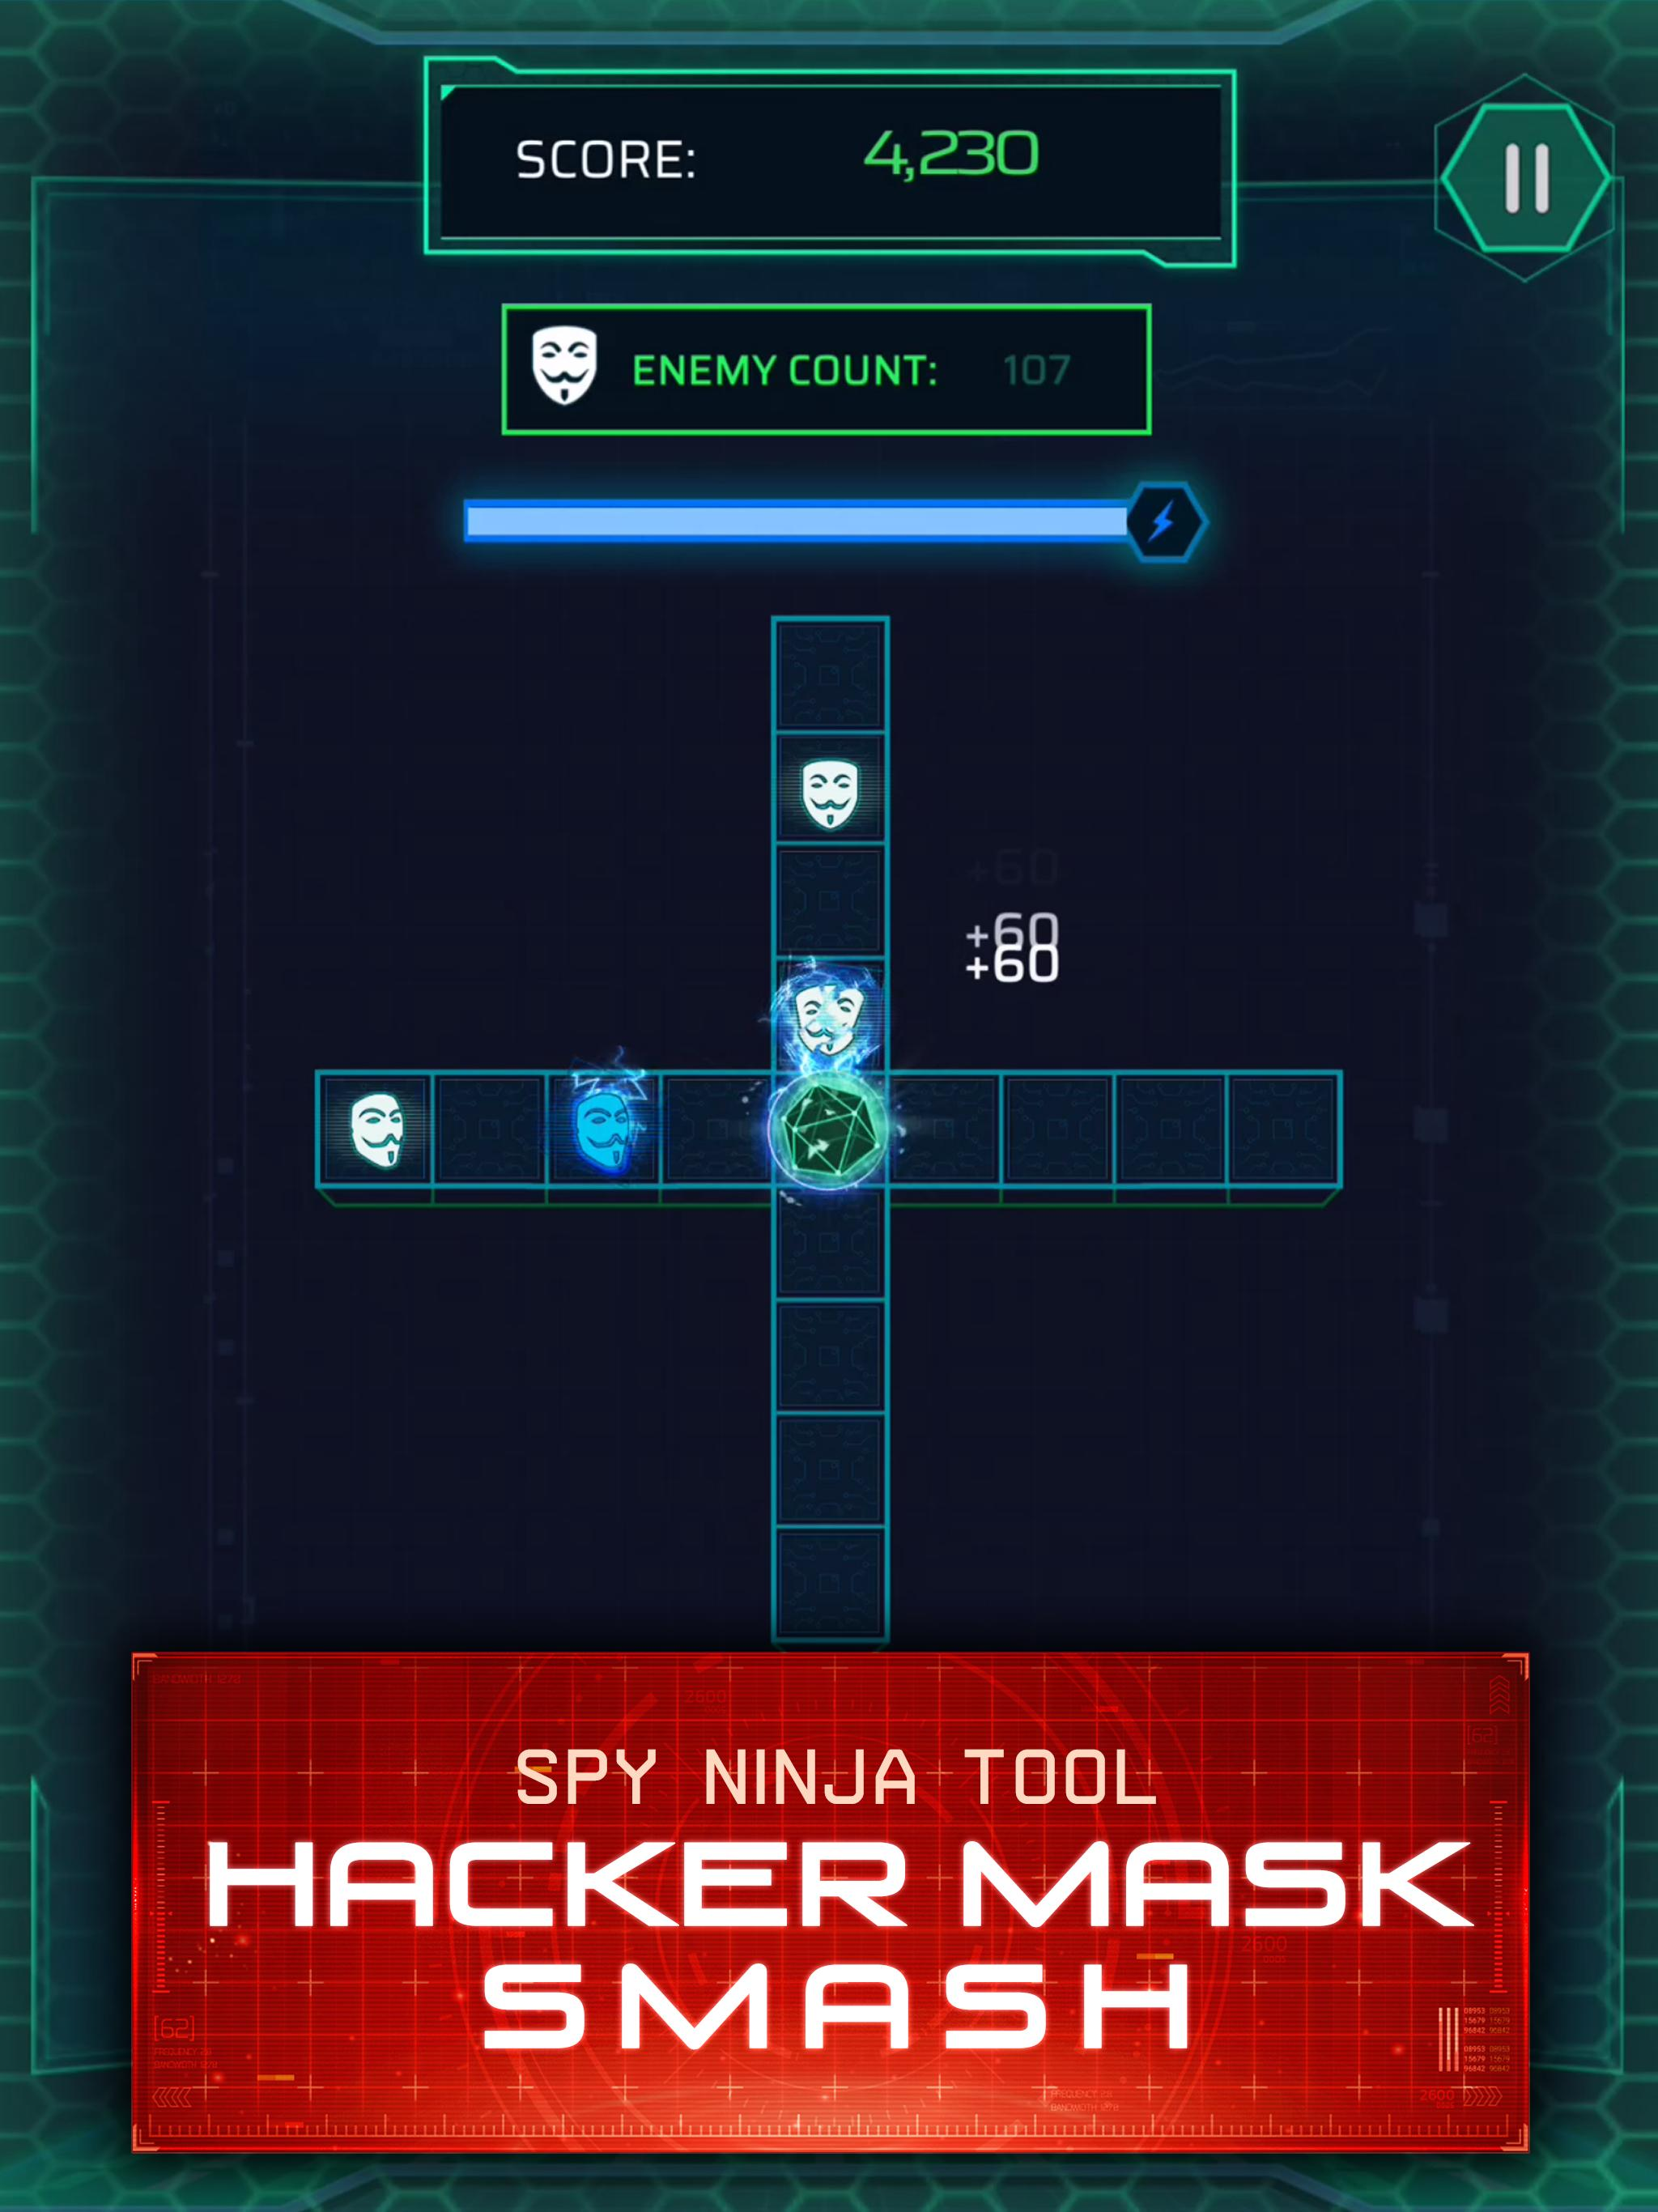 Spy Ninja Network - Chad & Vy for Android - APK Download